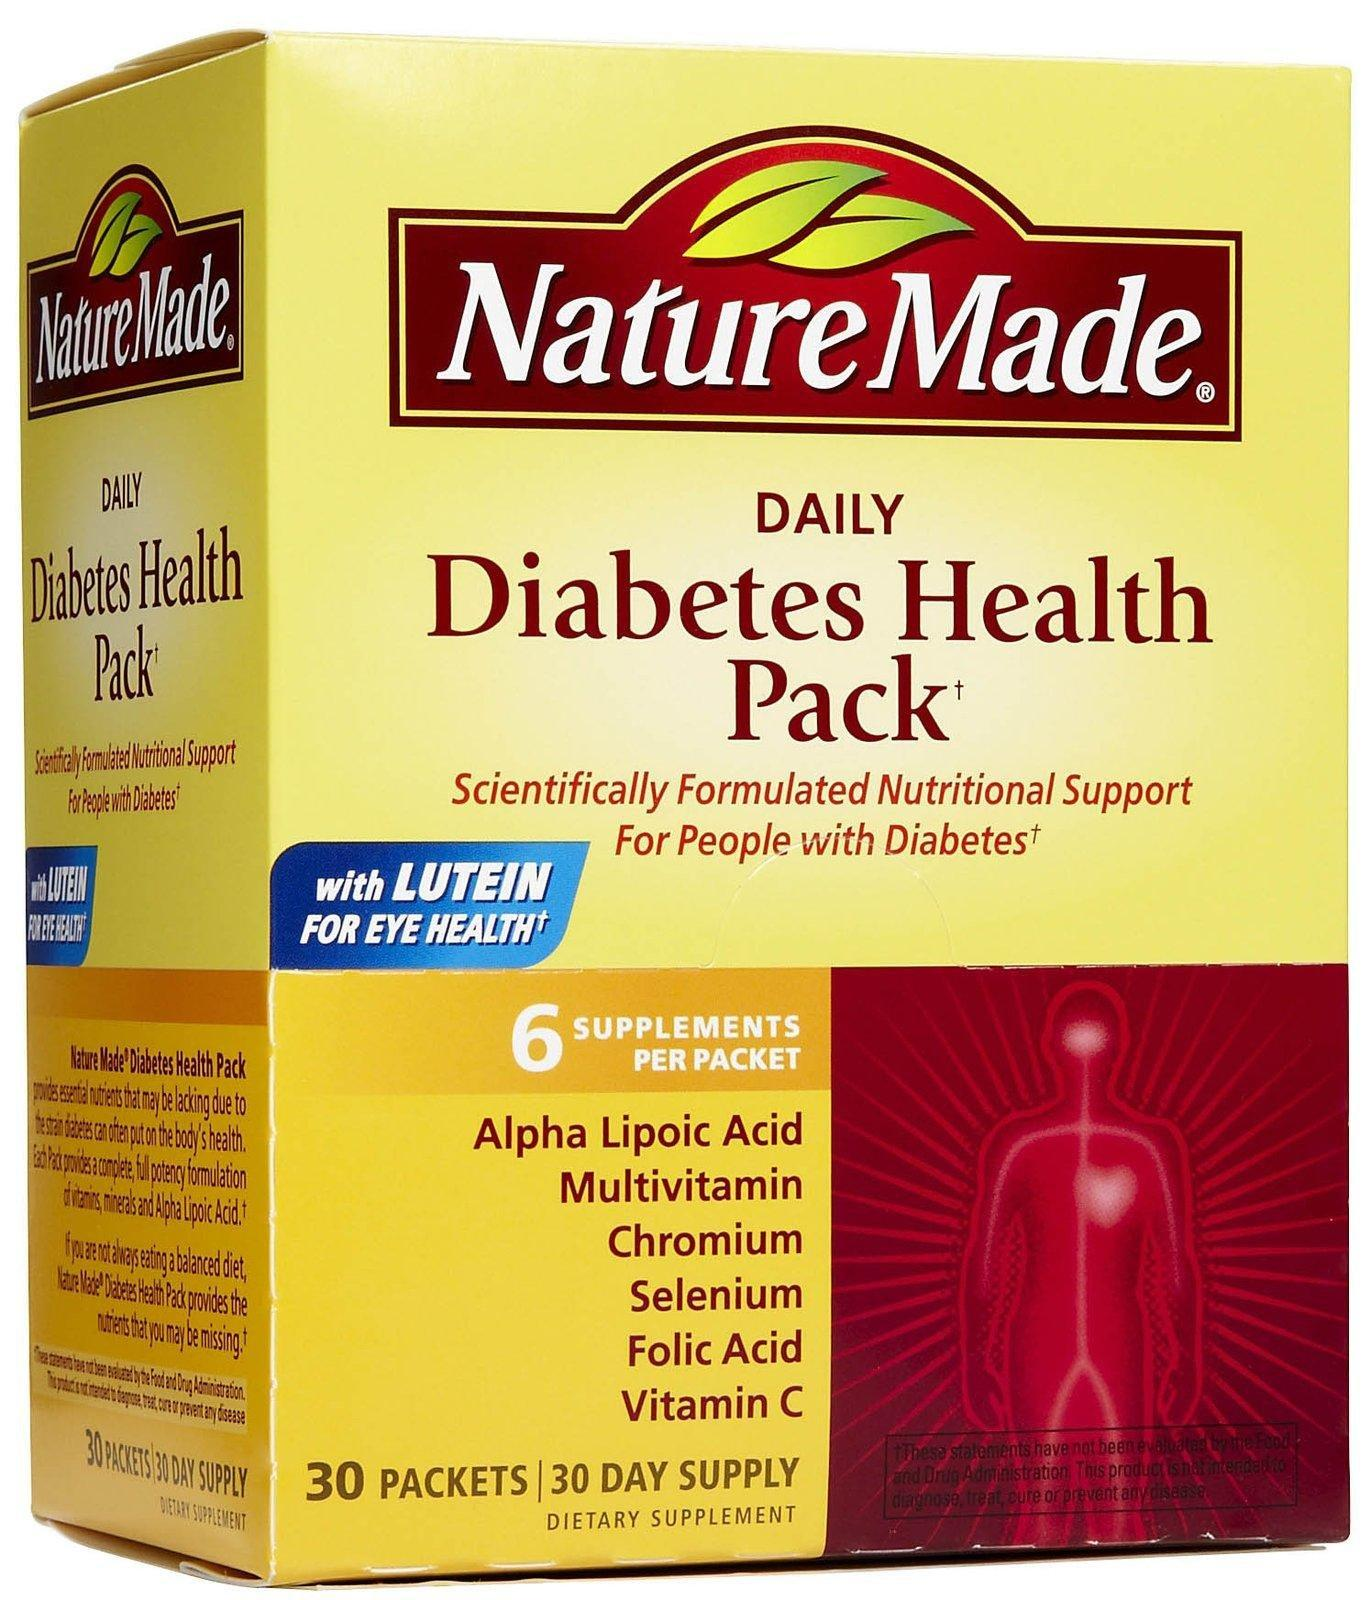 Nature Made Diabetes Health Pack Review